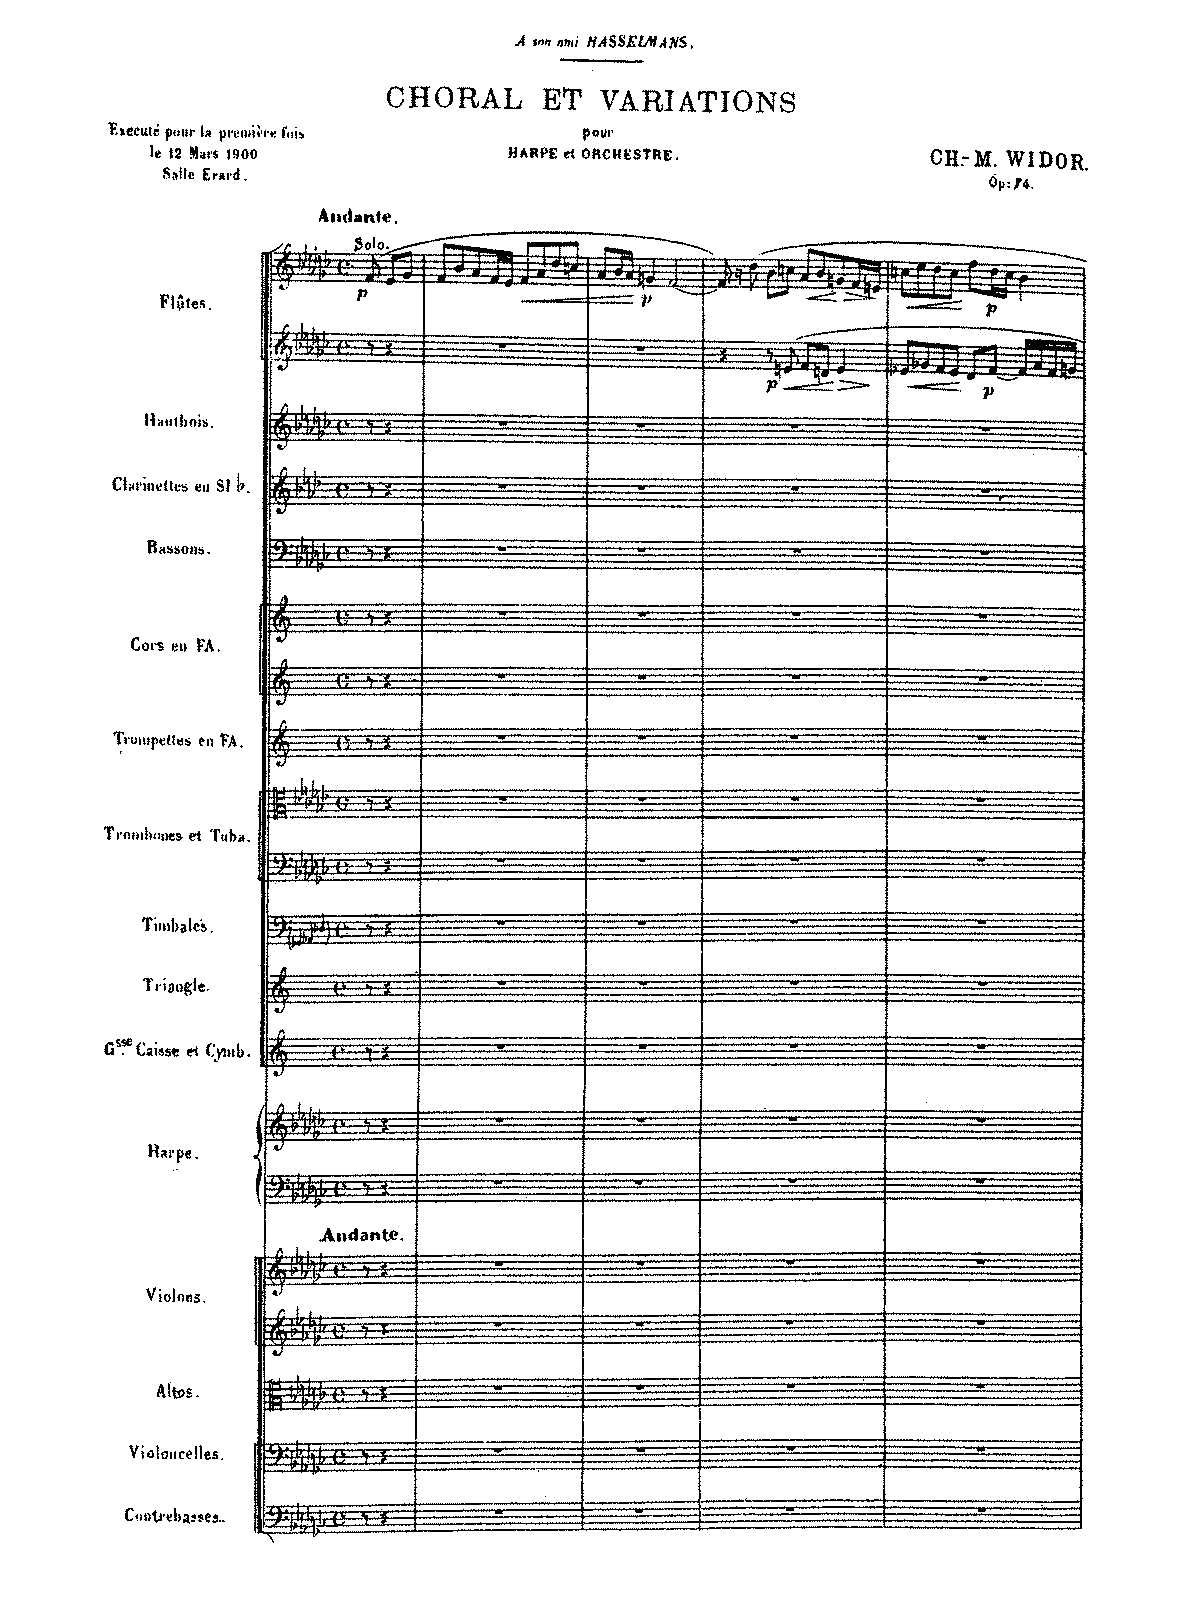 PMLP198033-Widor - Choral et variations (orch. score).pdf